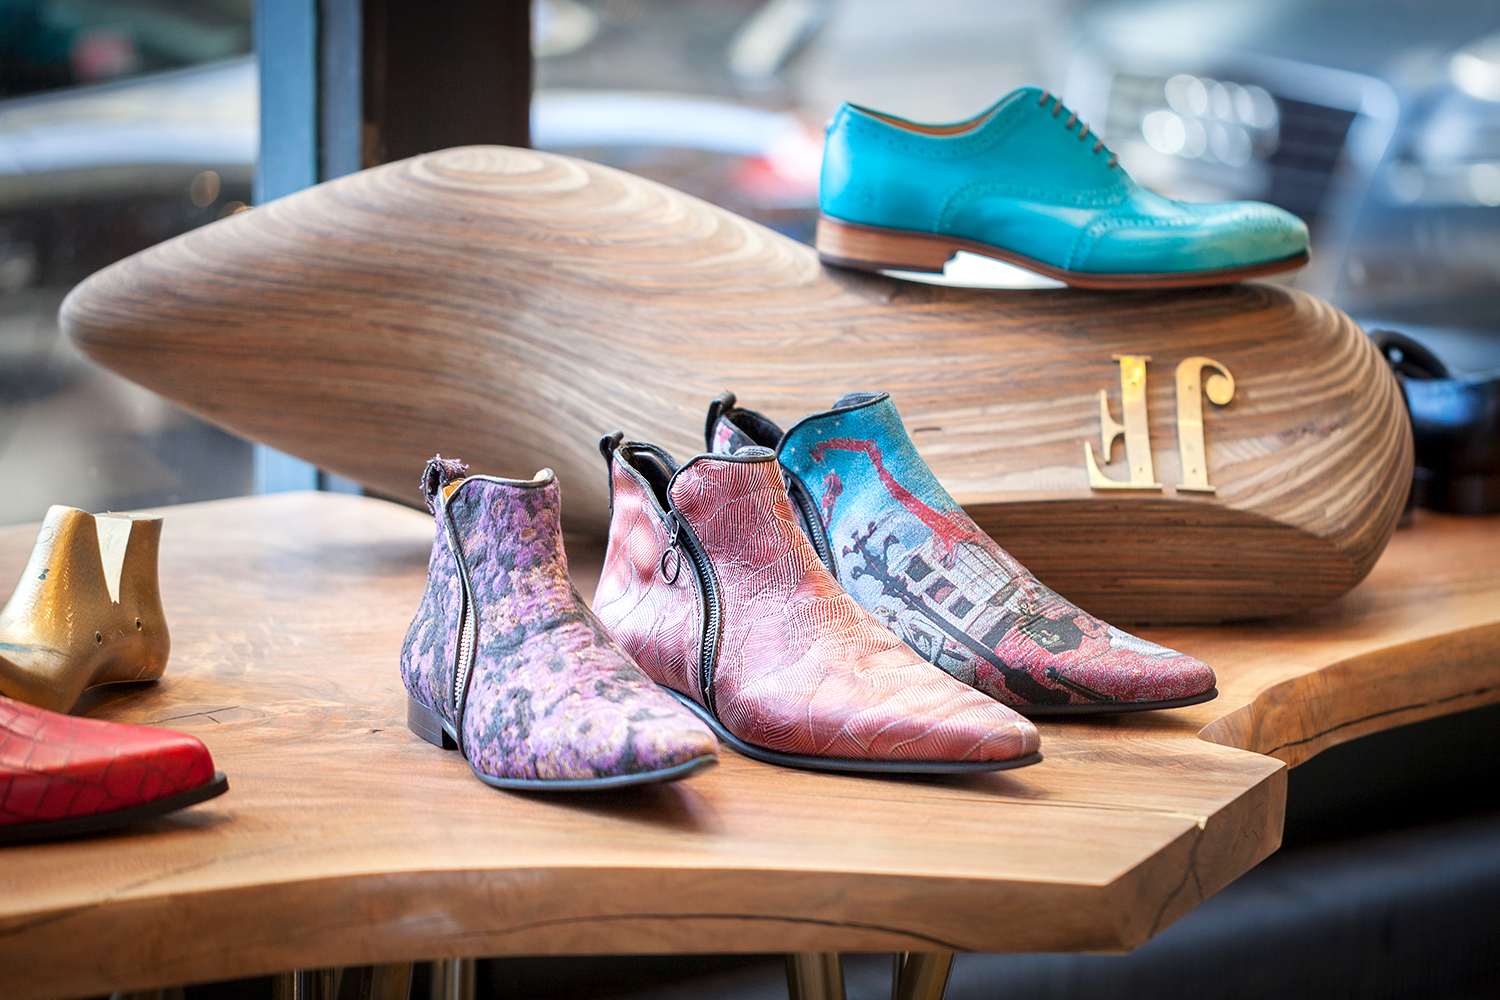 https://upload.wikimedia.org/wikipedia/commons/b/ba/John_Fluevog_Shoes%2C_37_Main_Street%2C_Brooklyn_NY.jpg